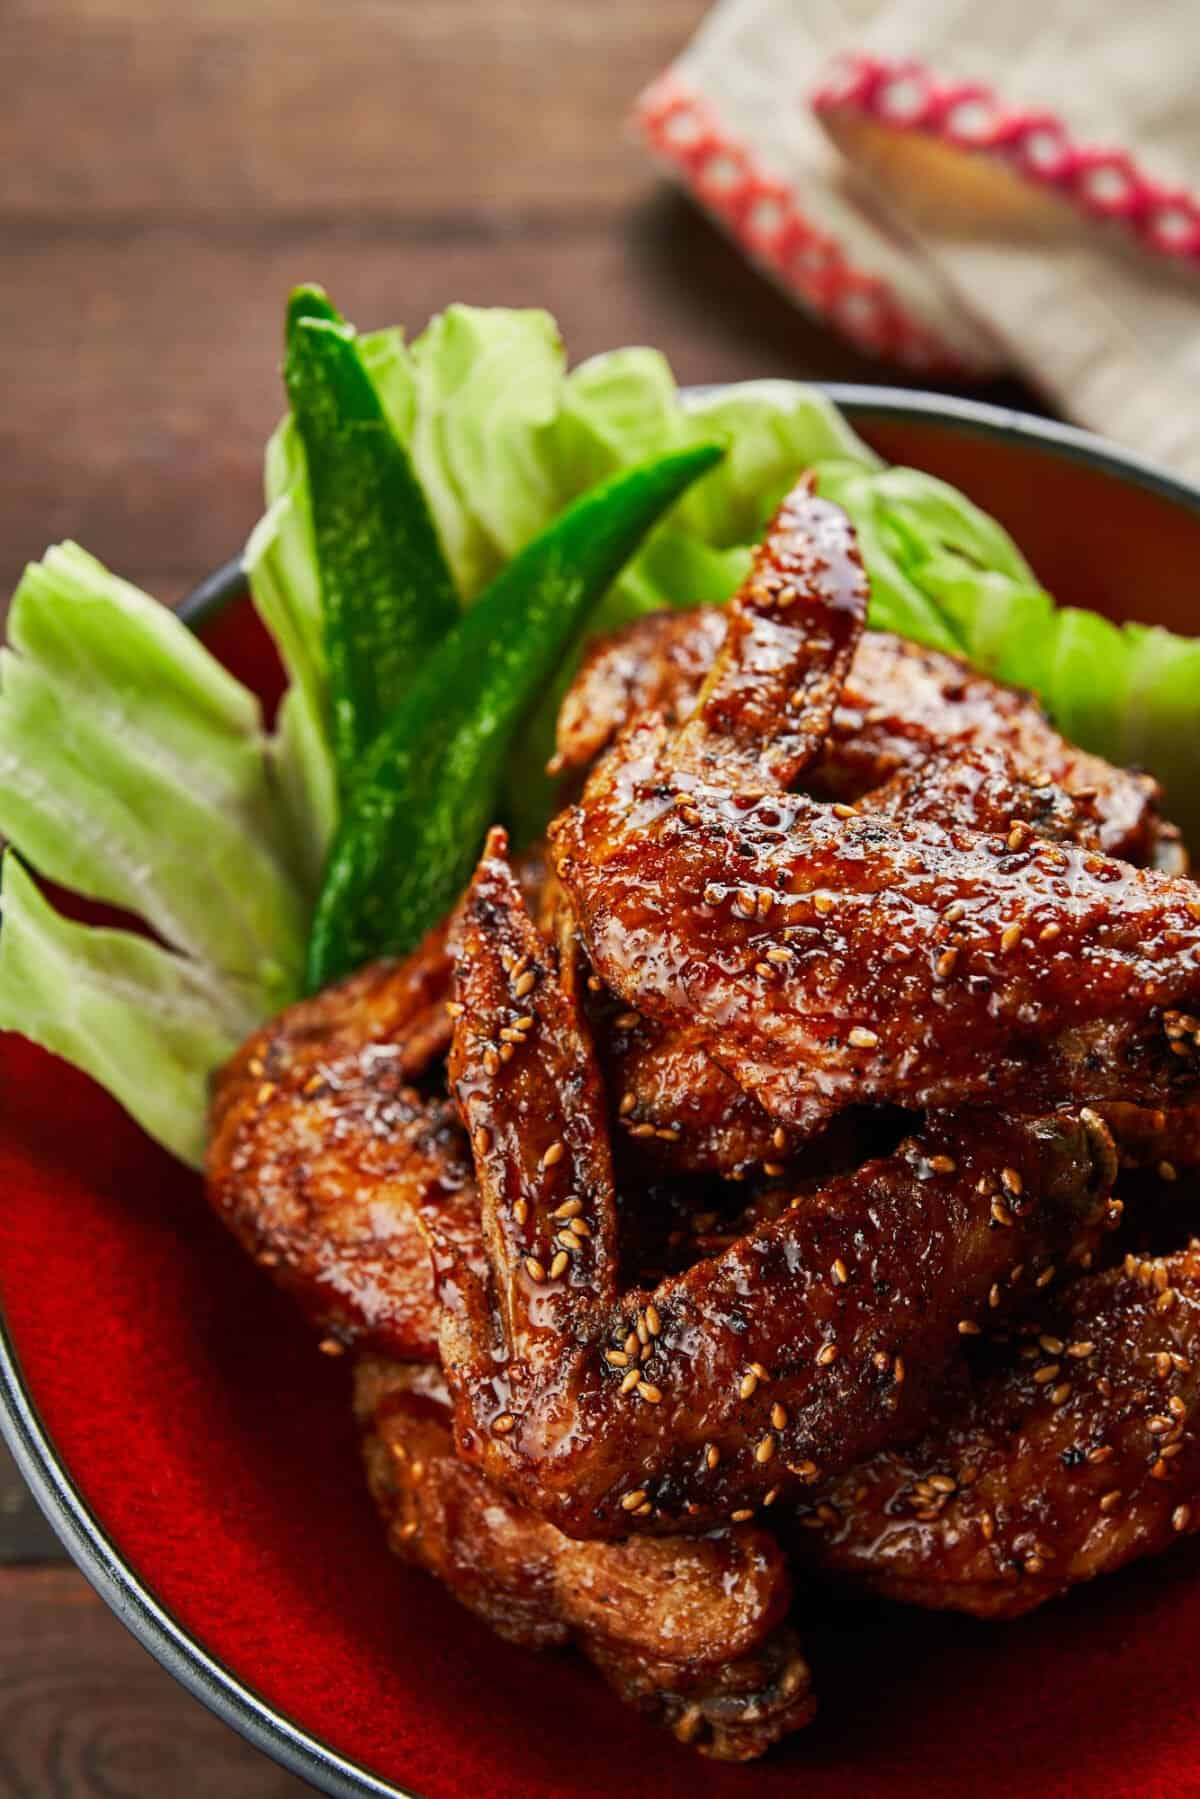 Secrets to making the crispiest wings ever! Glazed in a sweet and savory sauce that's loaded with ginger, garlic and black pepper this Tebasaki recipe is dangerously addictive.